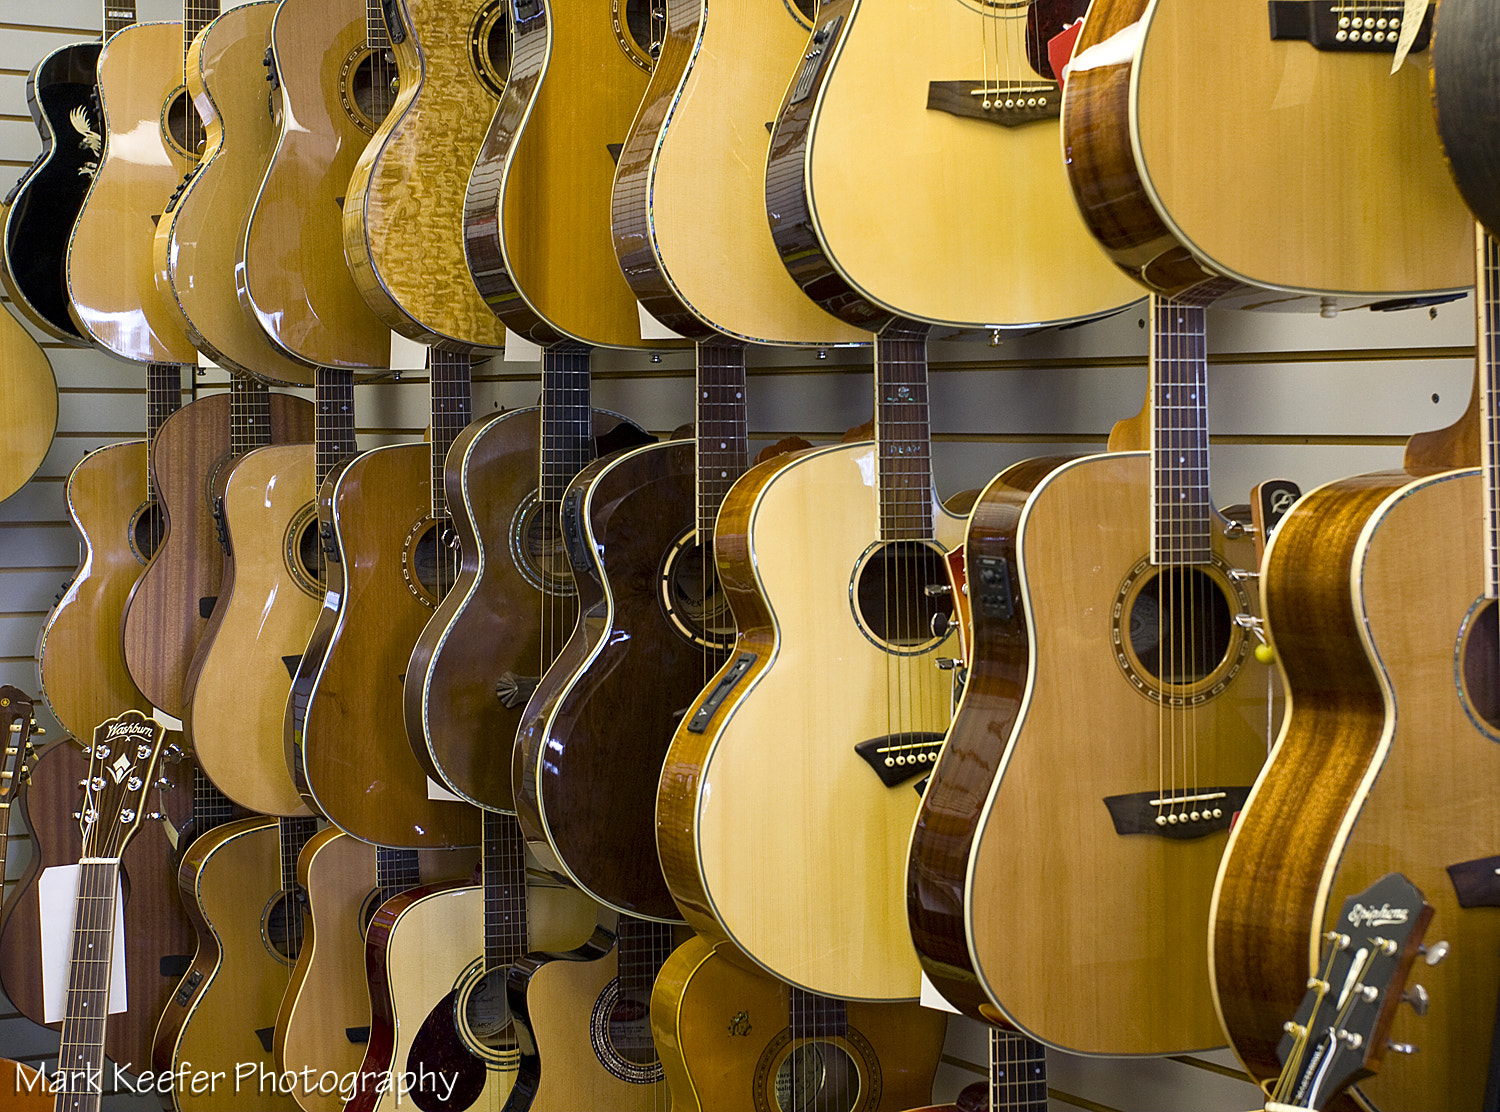 Photograph Guitars by Mark Keefer on 500px